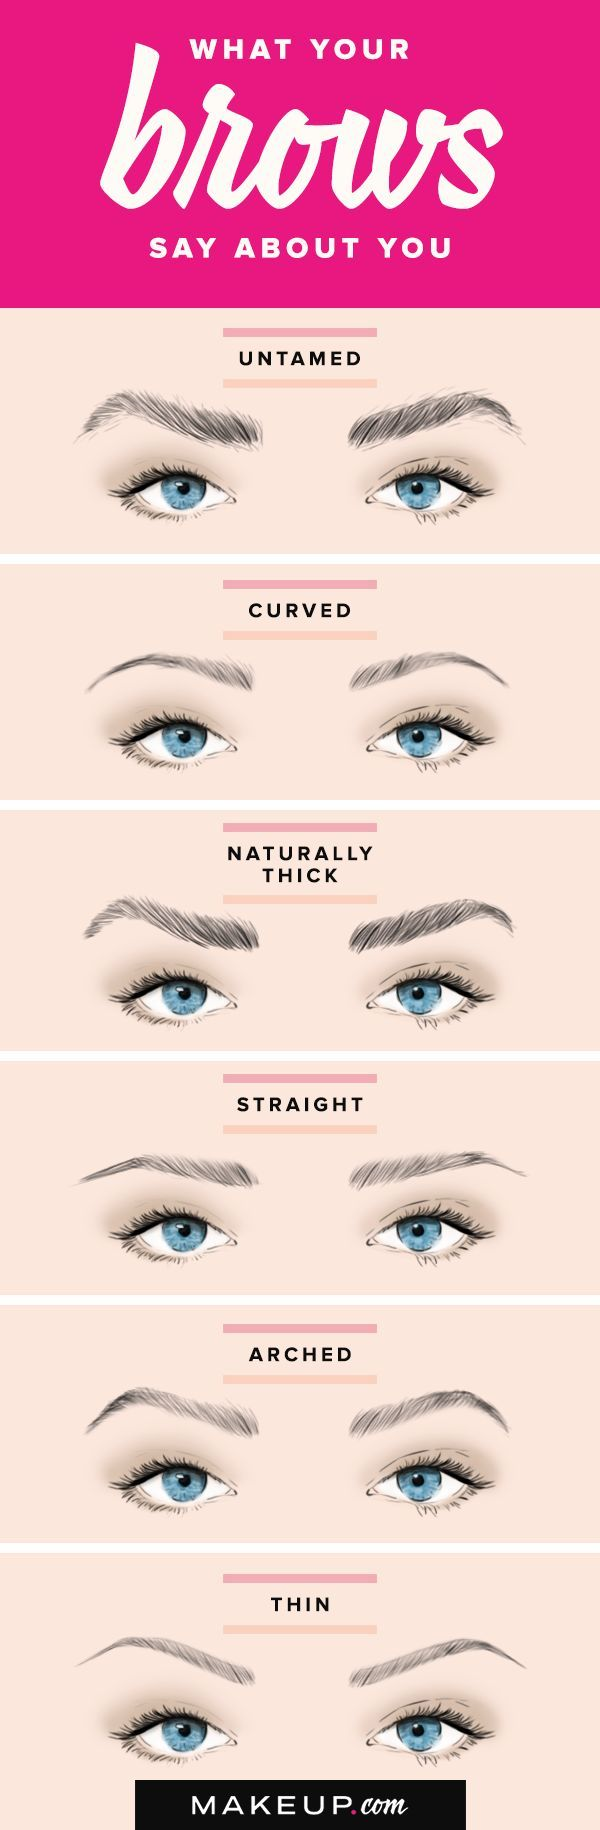 What Your Brows Say About You Beauty Tips Tutorials Pinterest